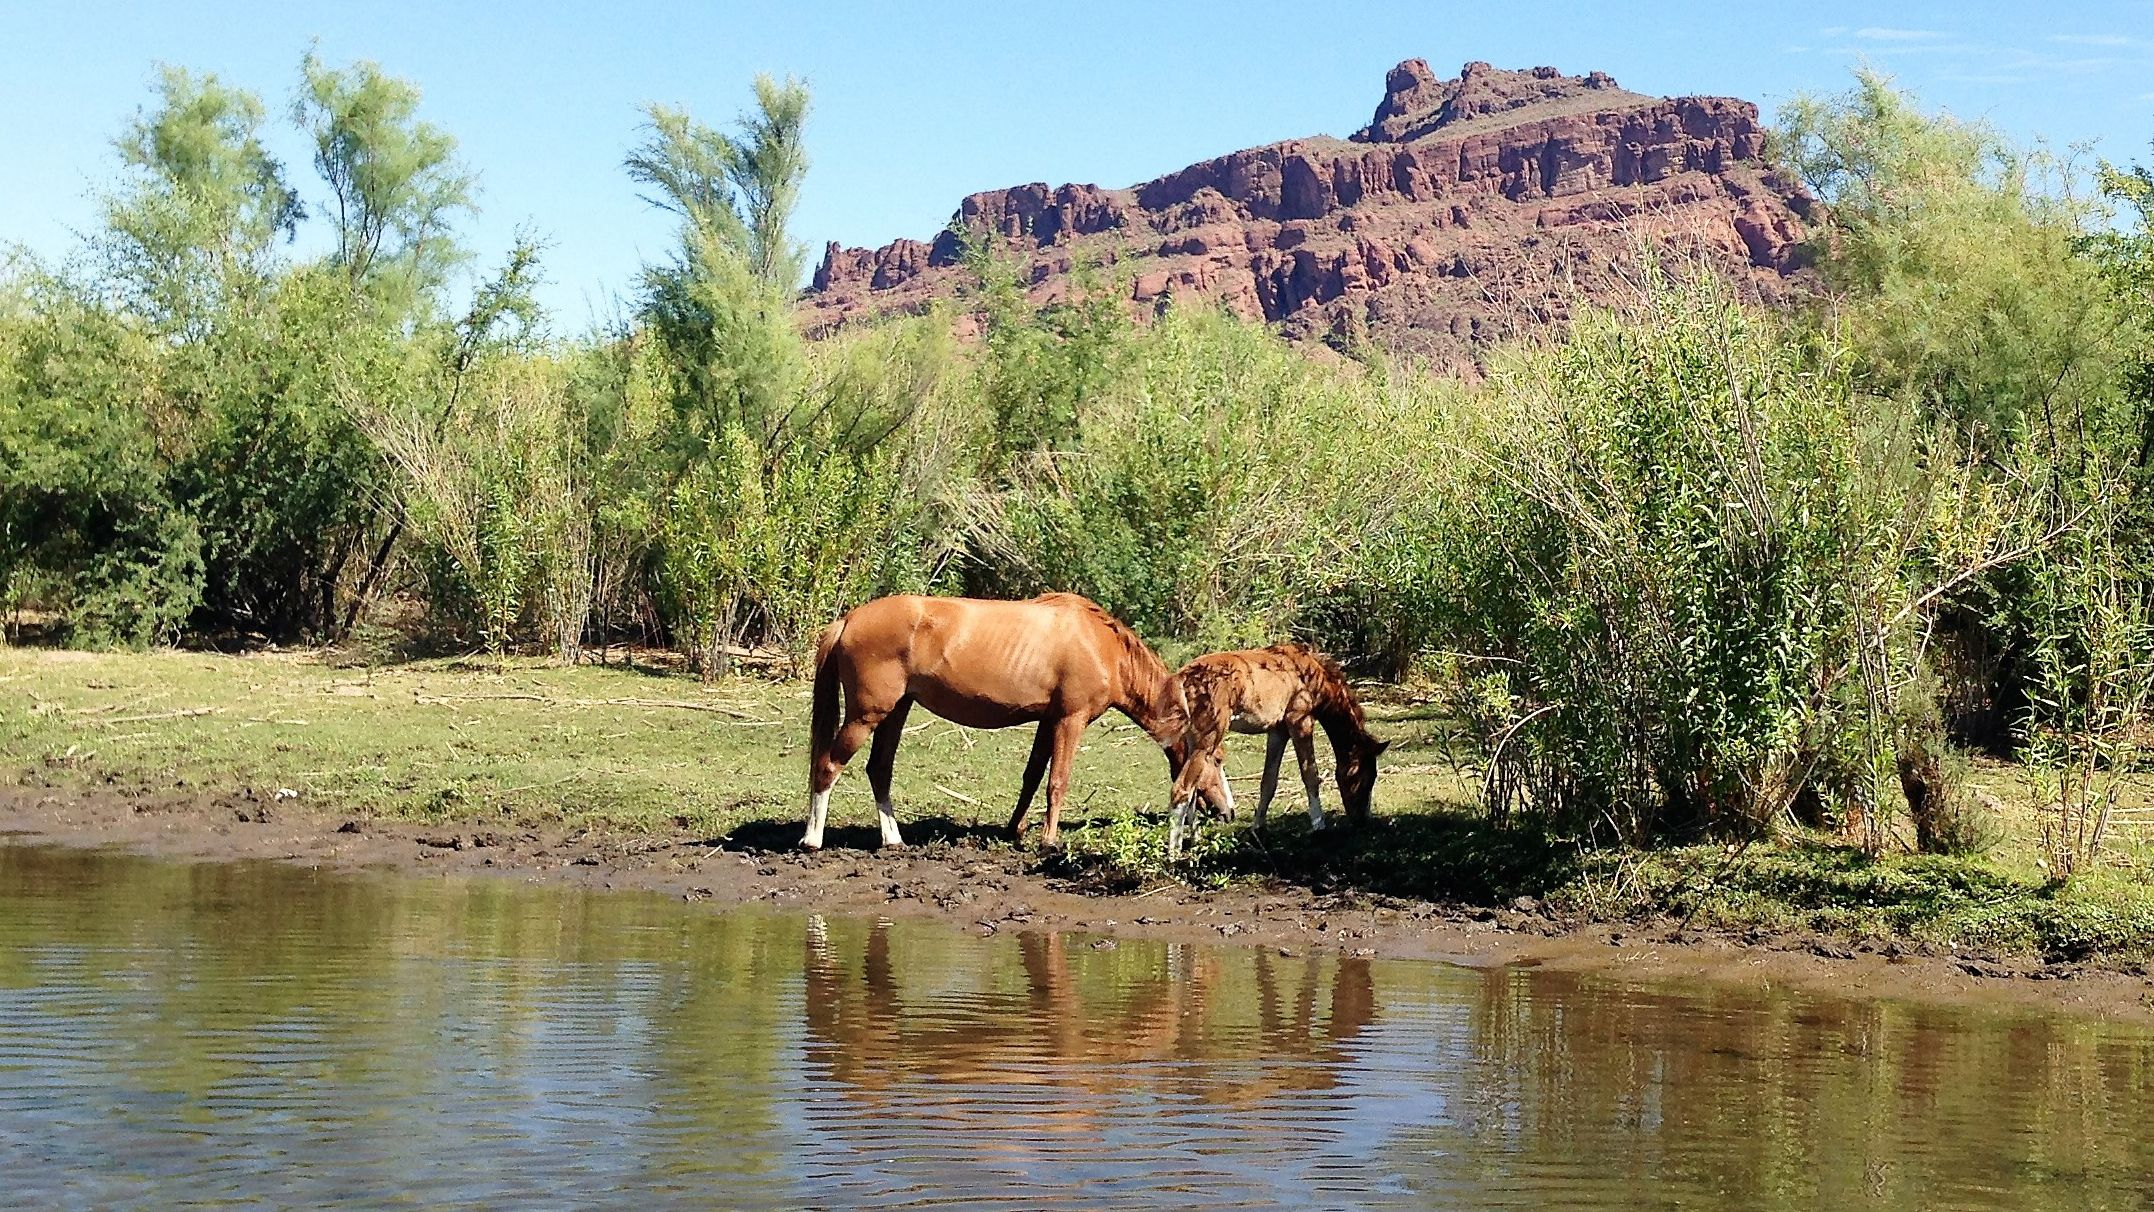 Two wild horses next to a lake in the Southwest of America